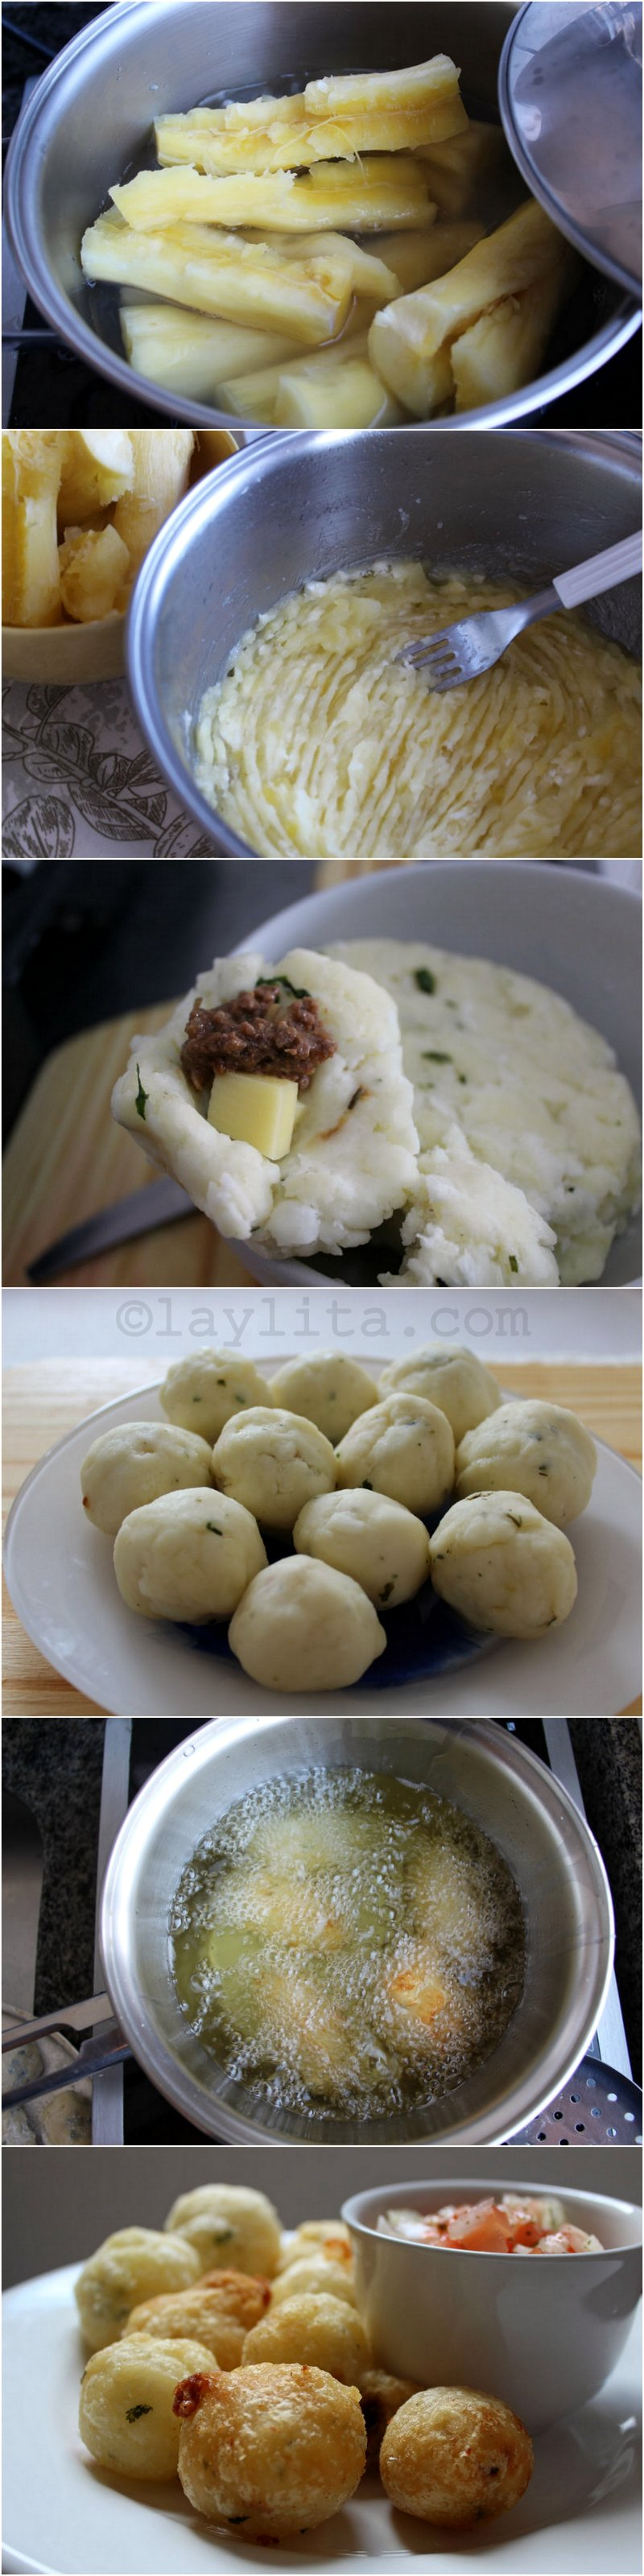 How to make Brazilian manioc or cassava balls stuffed with cheese - Bolinho de macaxeira